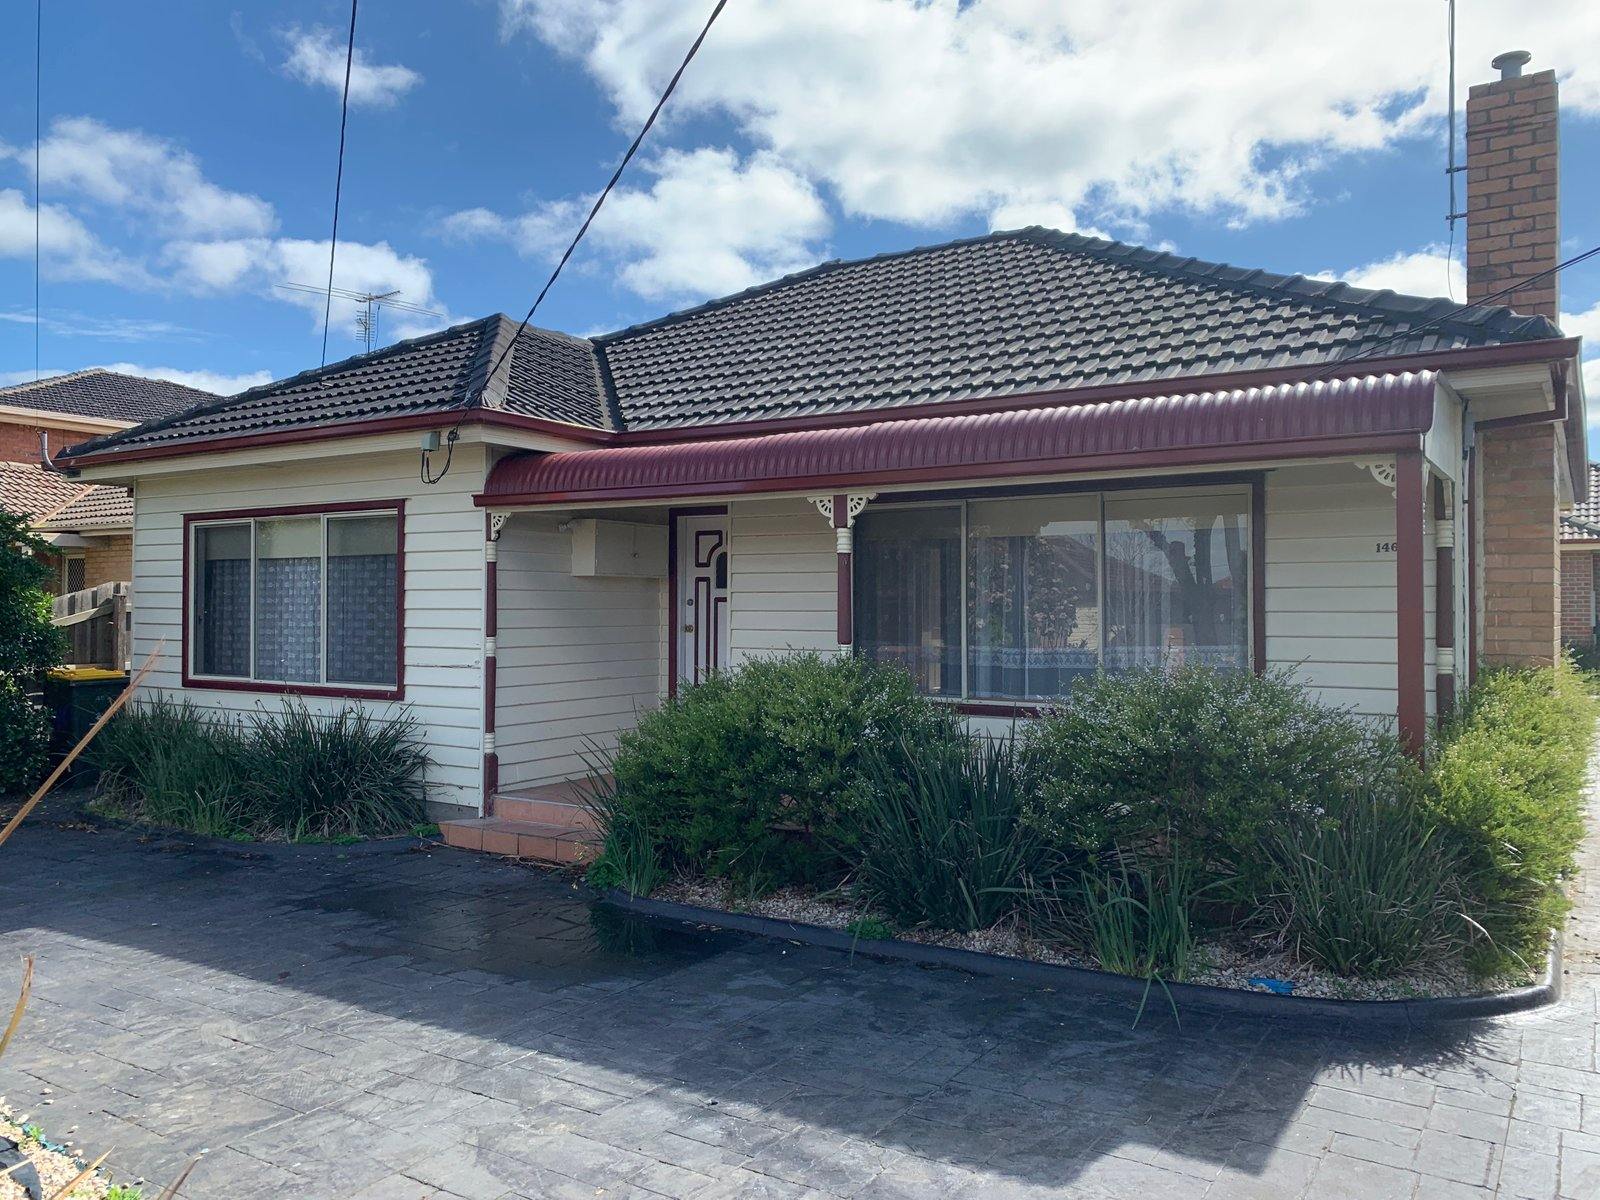 1/146 Halsey Road, Airport West, VIC, 3042 image 1